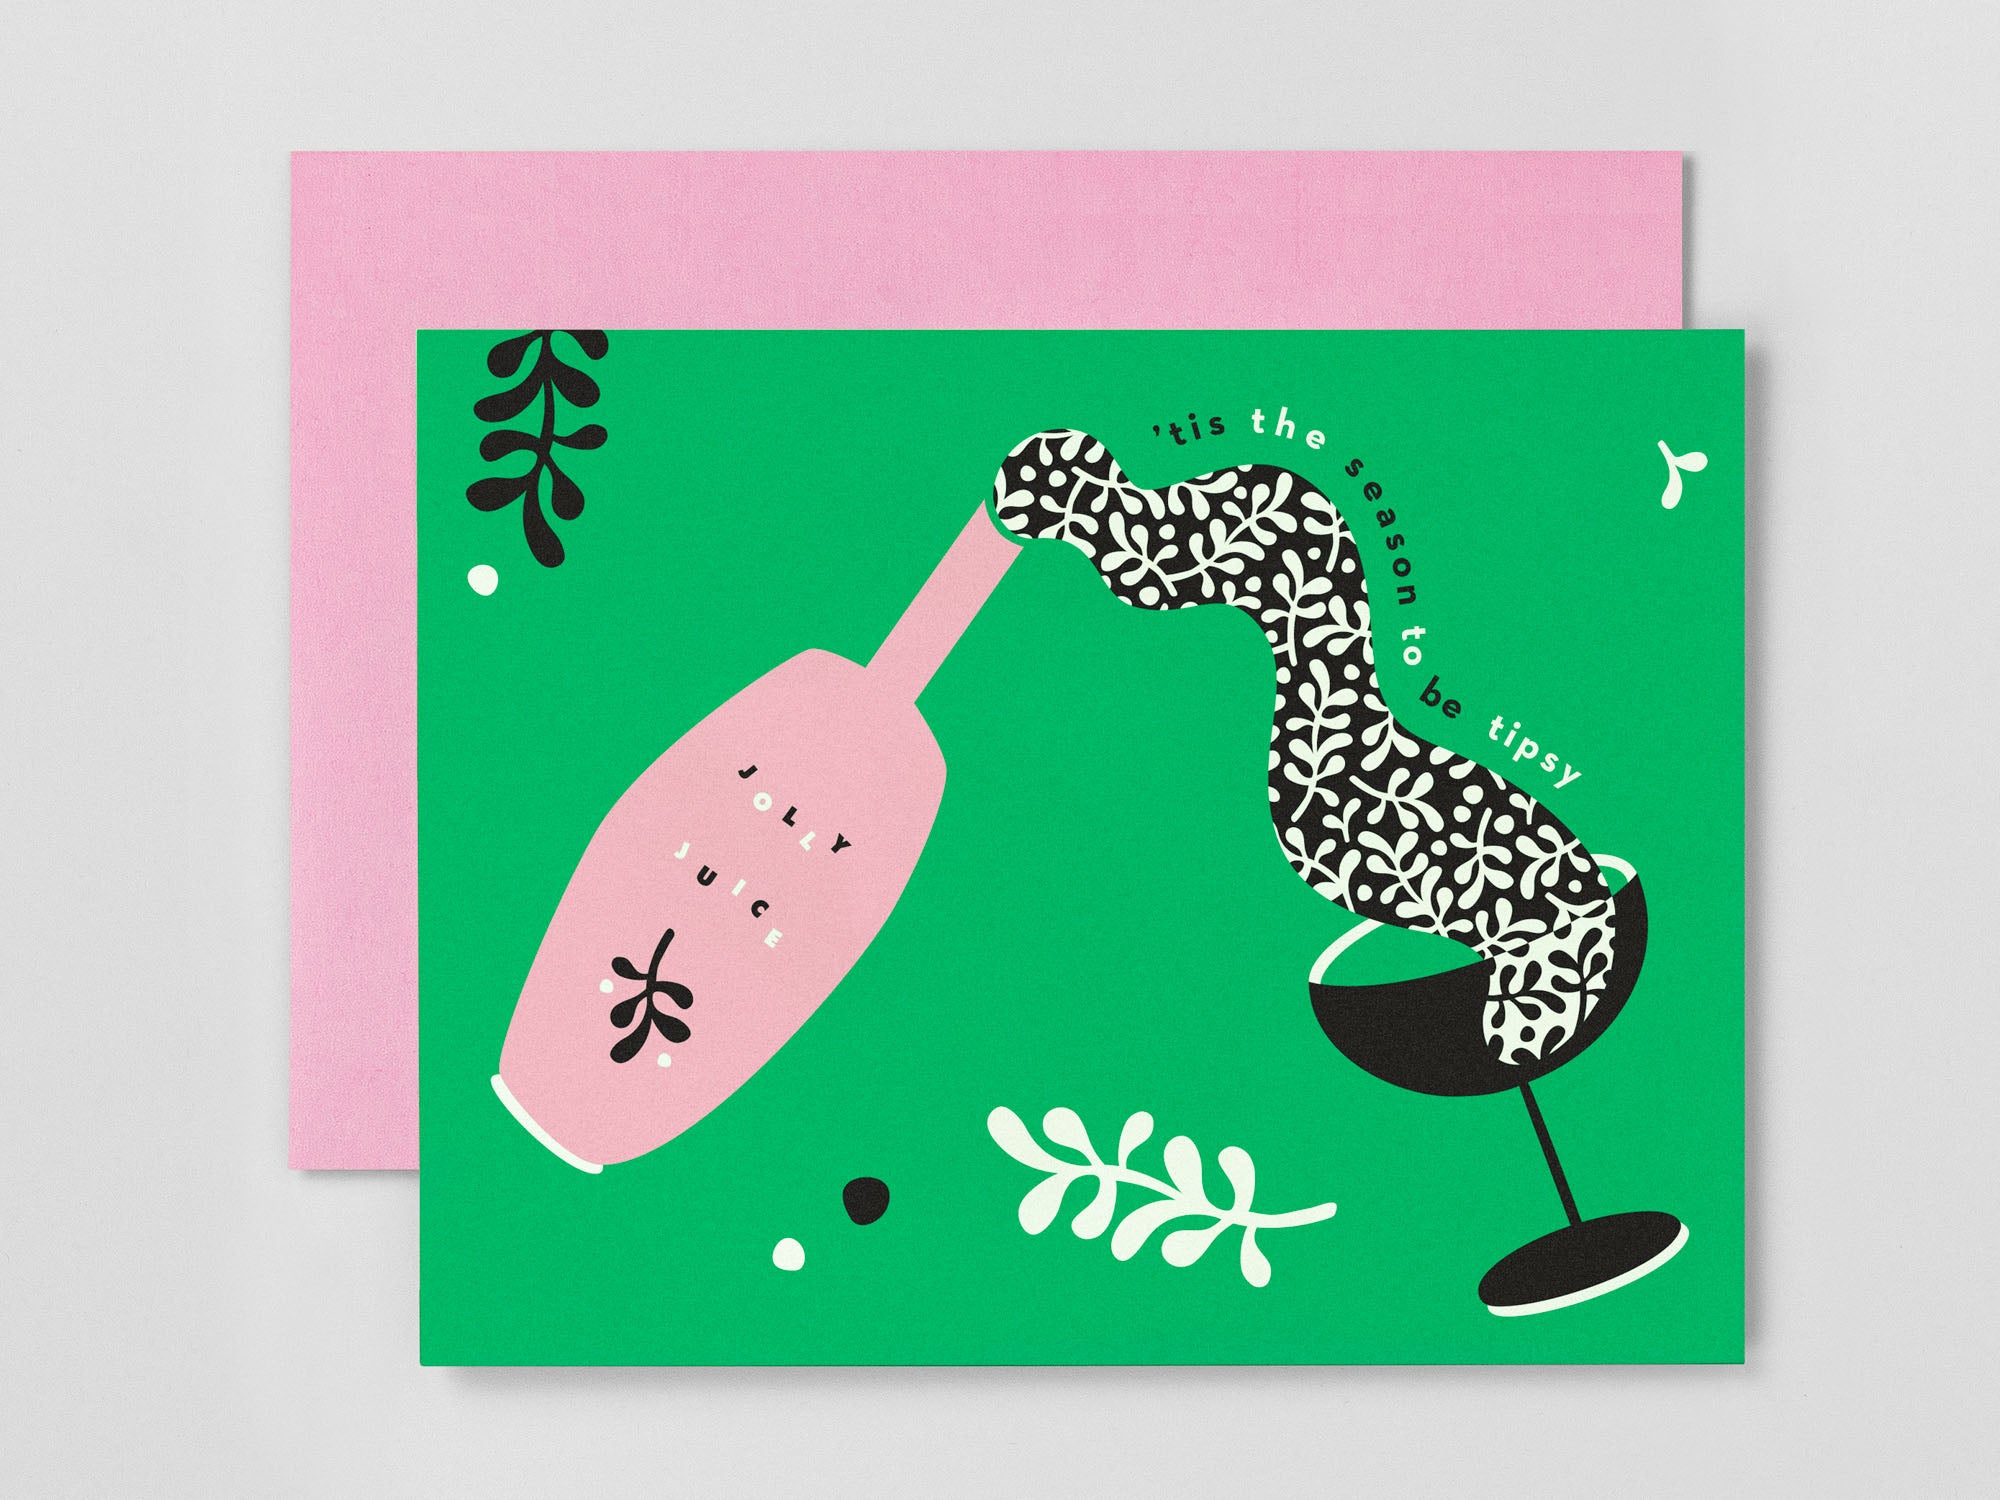 'Tis the Season to Be Tipsy Holiday Card, collaboration between Etsy and Match.com. Designed by @mydarlin_bk